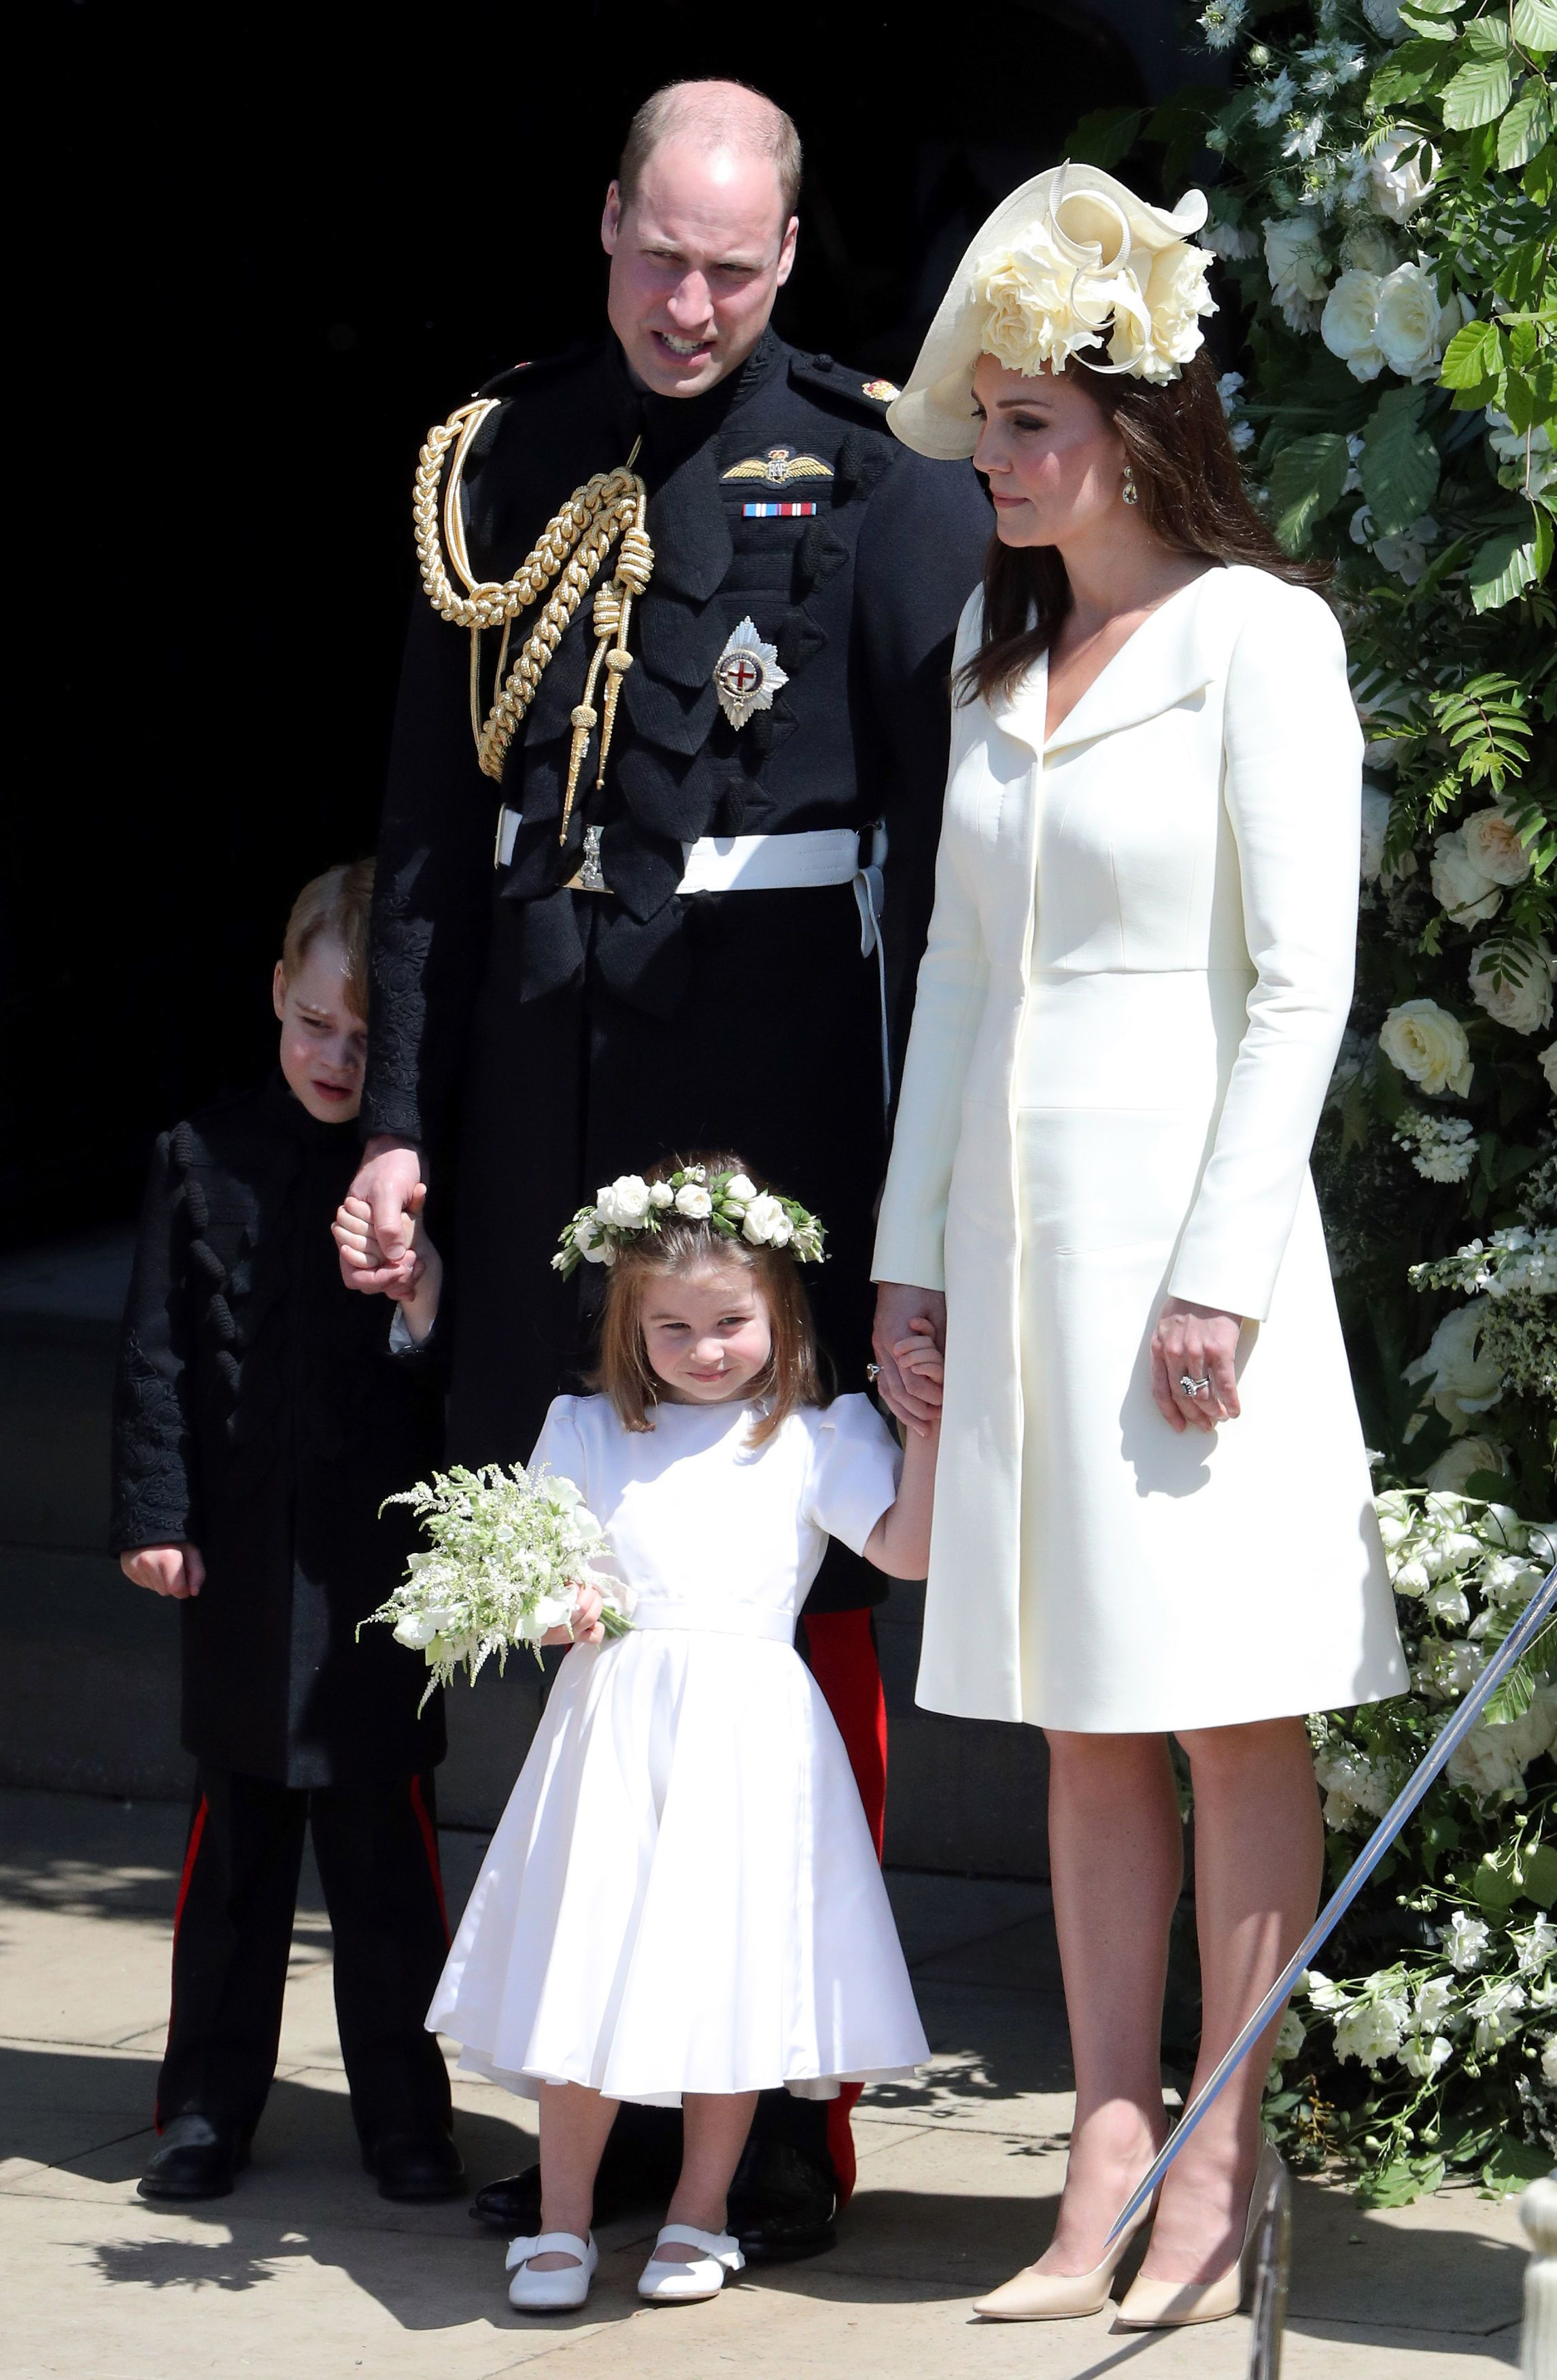 Kate Middleton Royal Wedding Outfit What Did Wear To Meghan Markle Prince Harry S